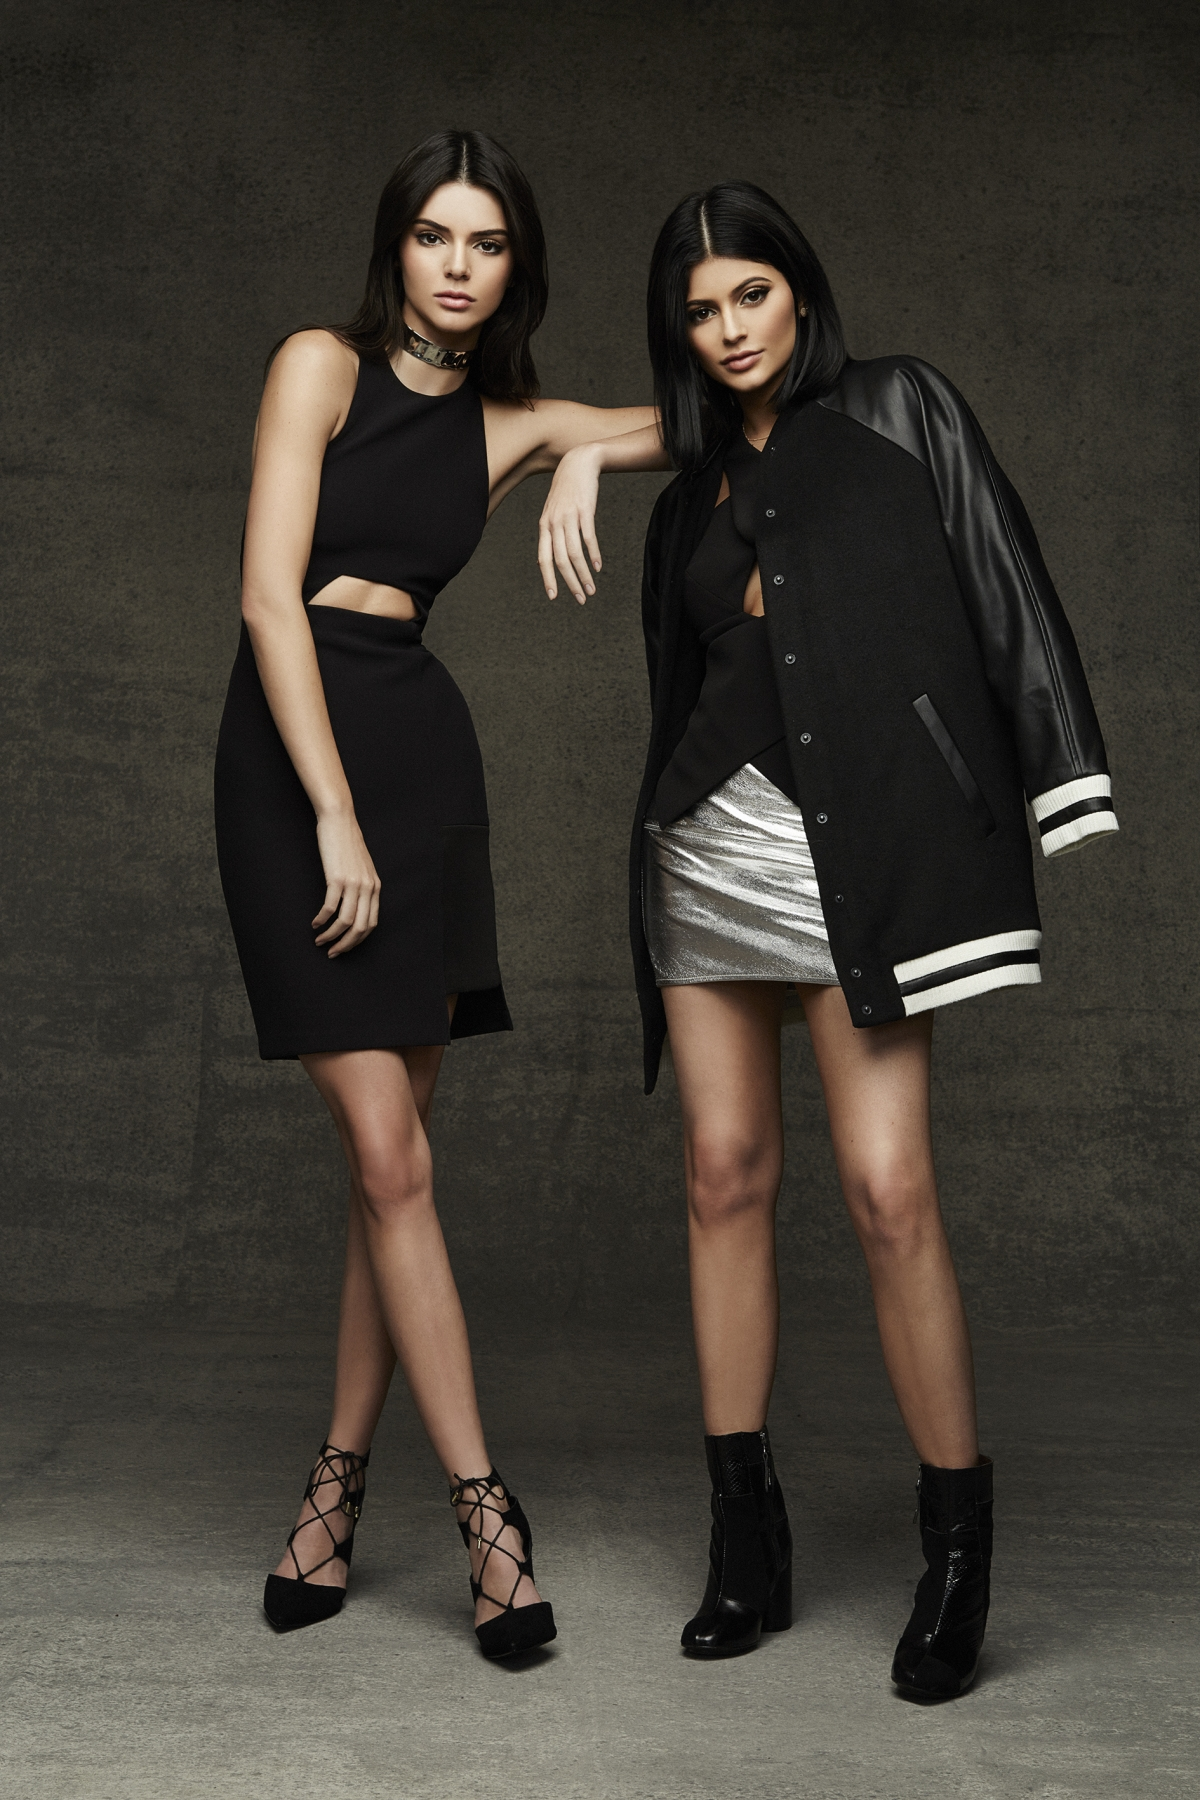 Kendall Jenner and Kylie Jenner for Topshop